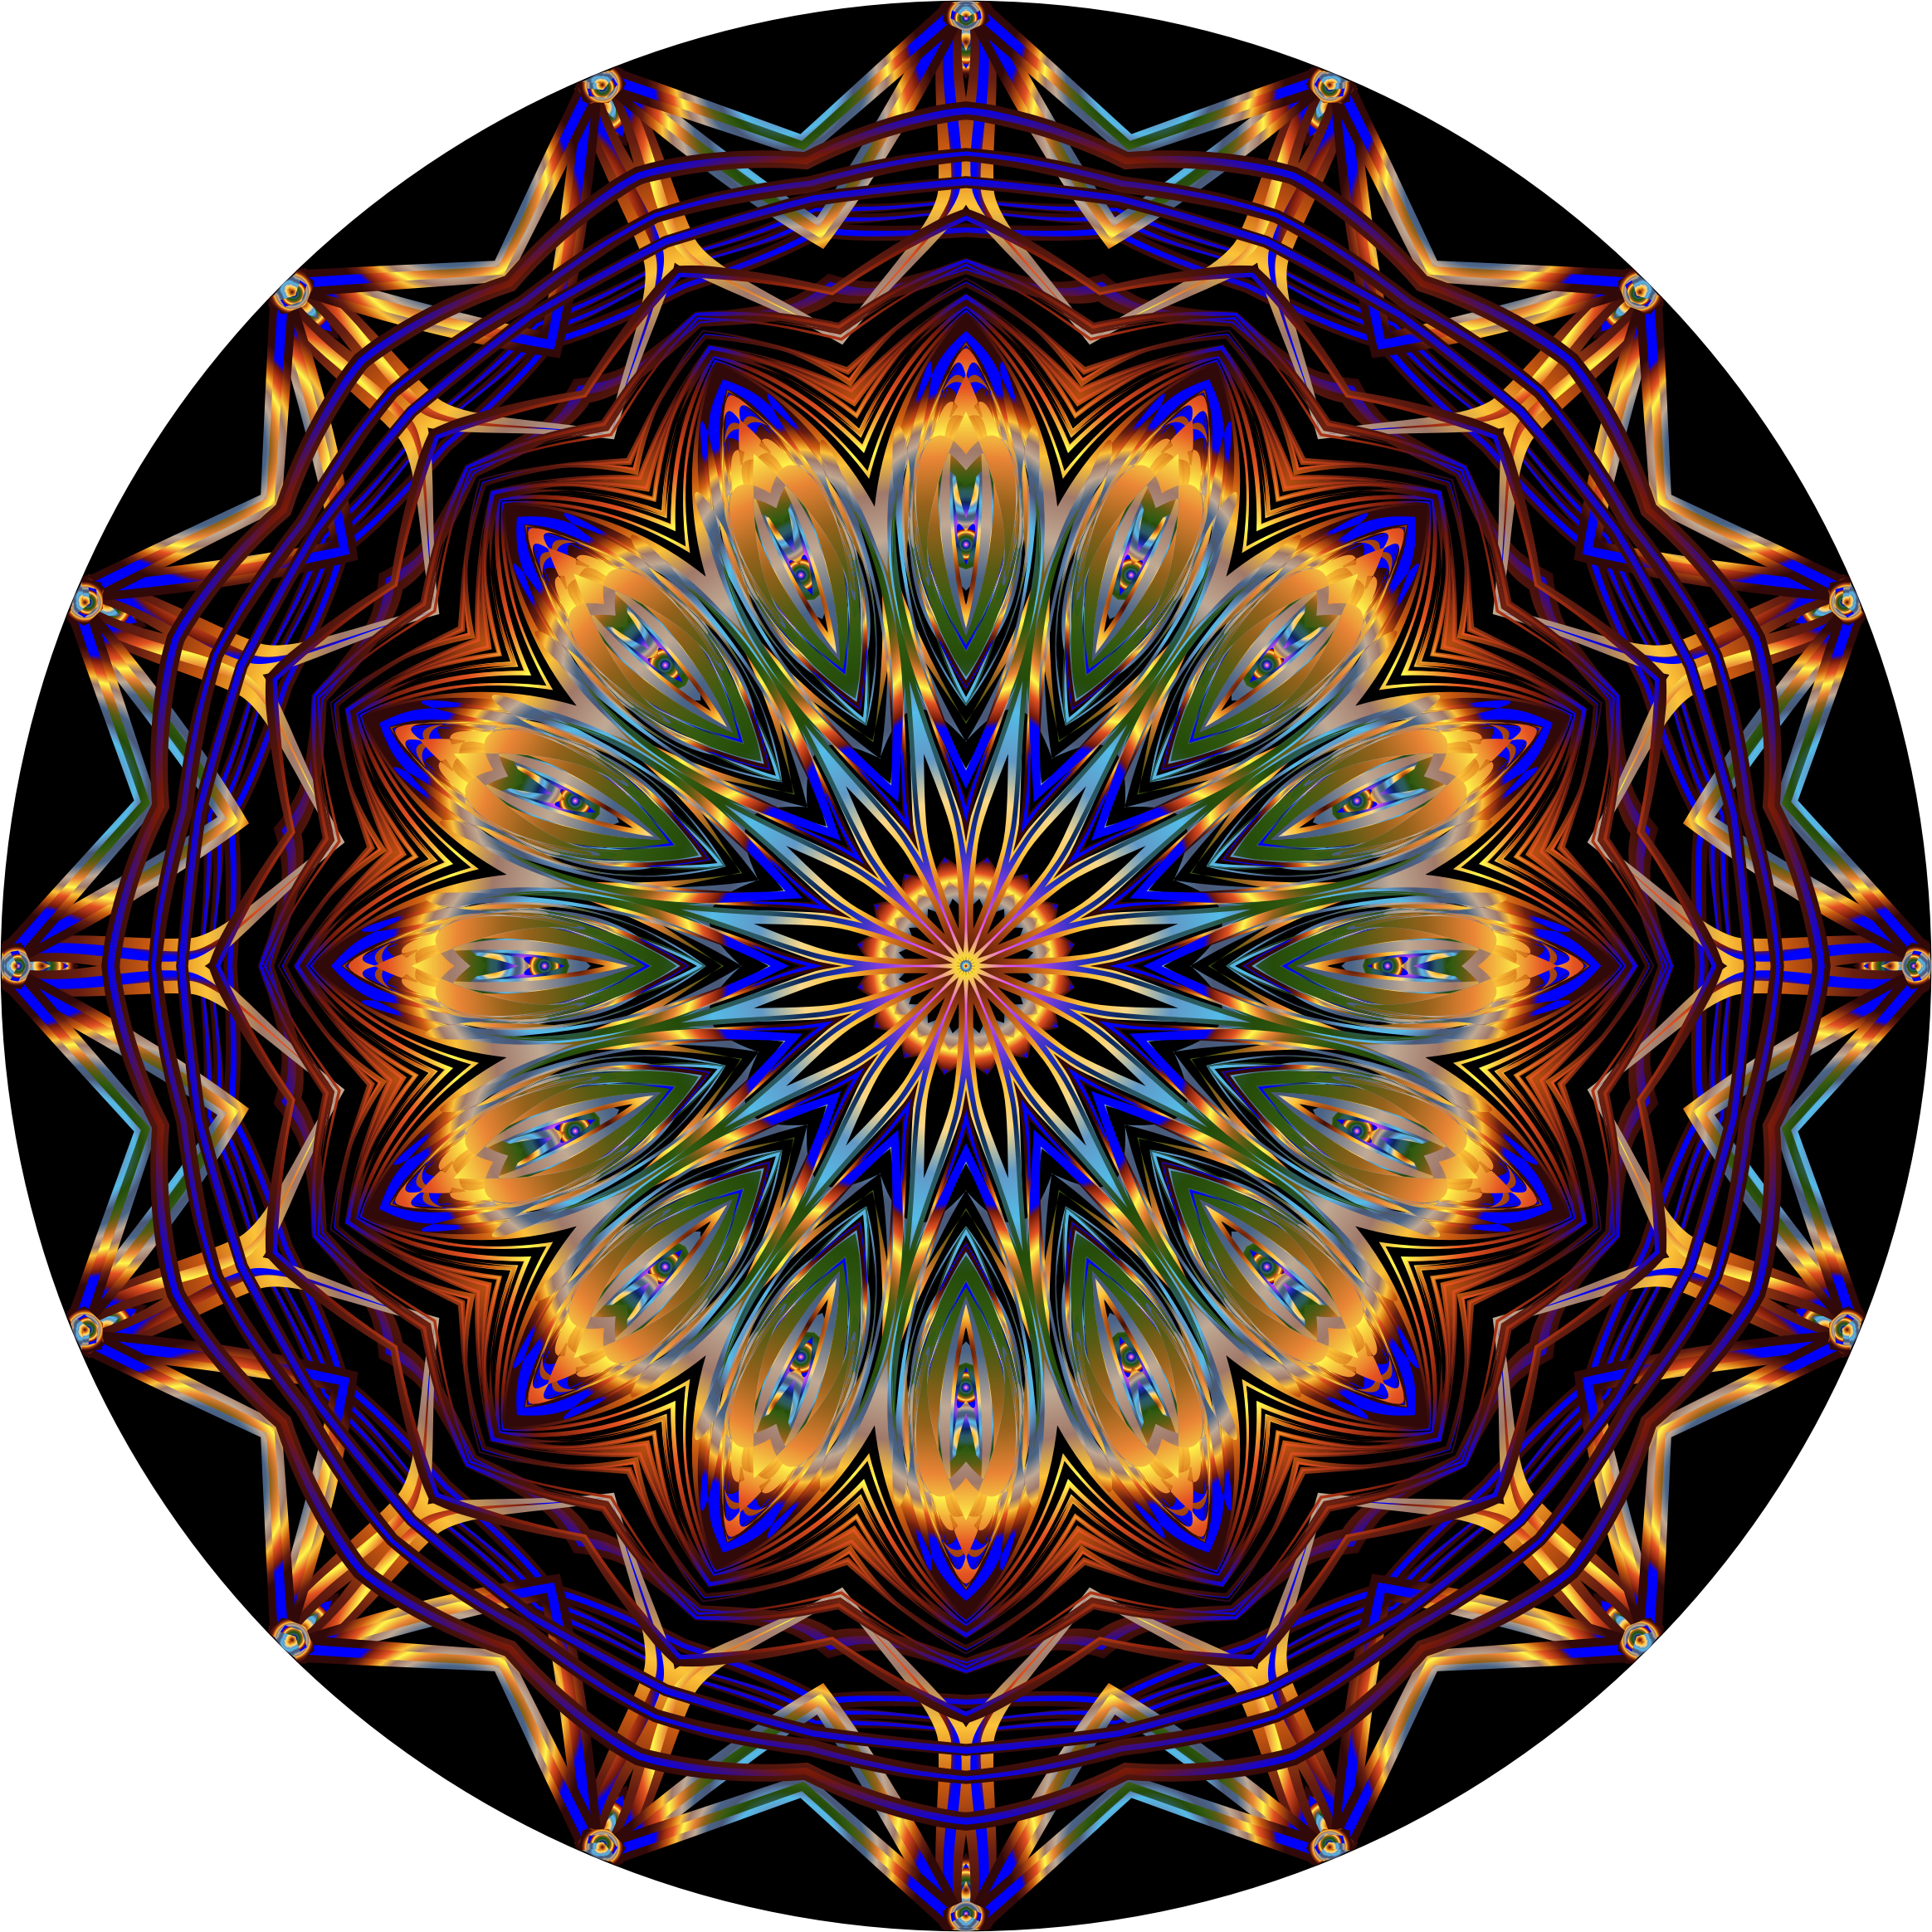 Prismatic Mandala Line Art 8 by GDJ